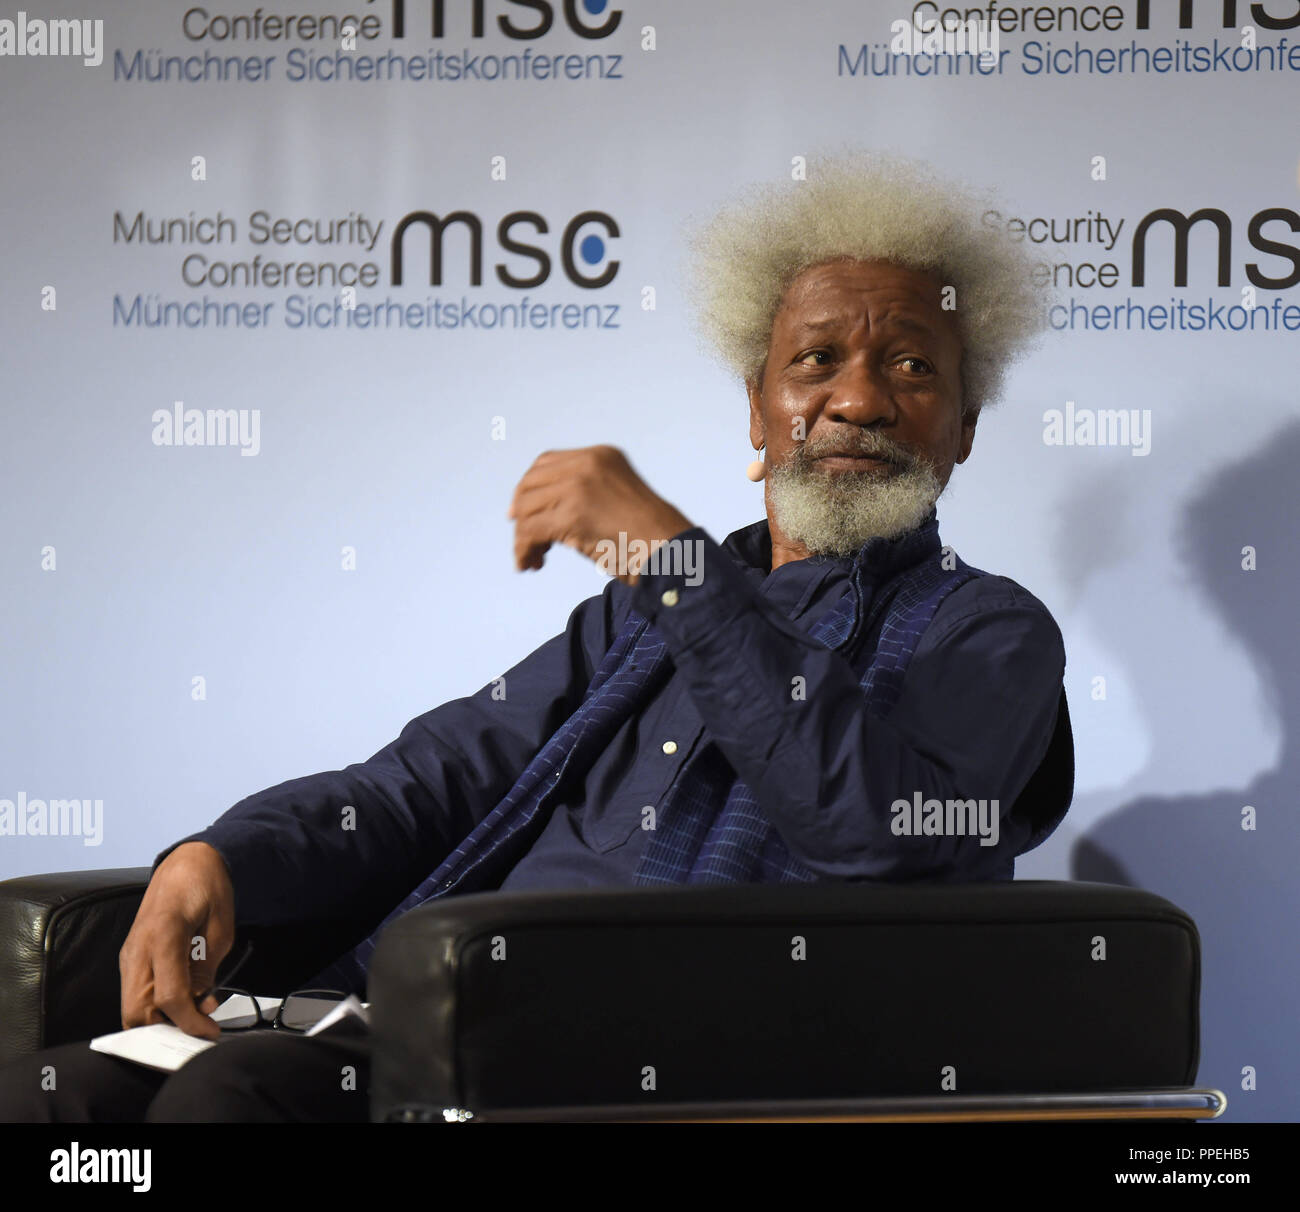 """The Nigerian writer and Nobel Prize laureate Wole Soyinka at a literary event in the Munich Literaturhaus. The three-part event entitled """"The Kassandra Phenomenon - Writers as seismographers of our time"""" is part of the framework program of the Munich Security Conference. Stock Photo"""